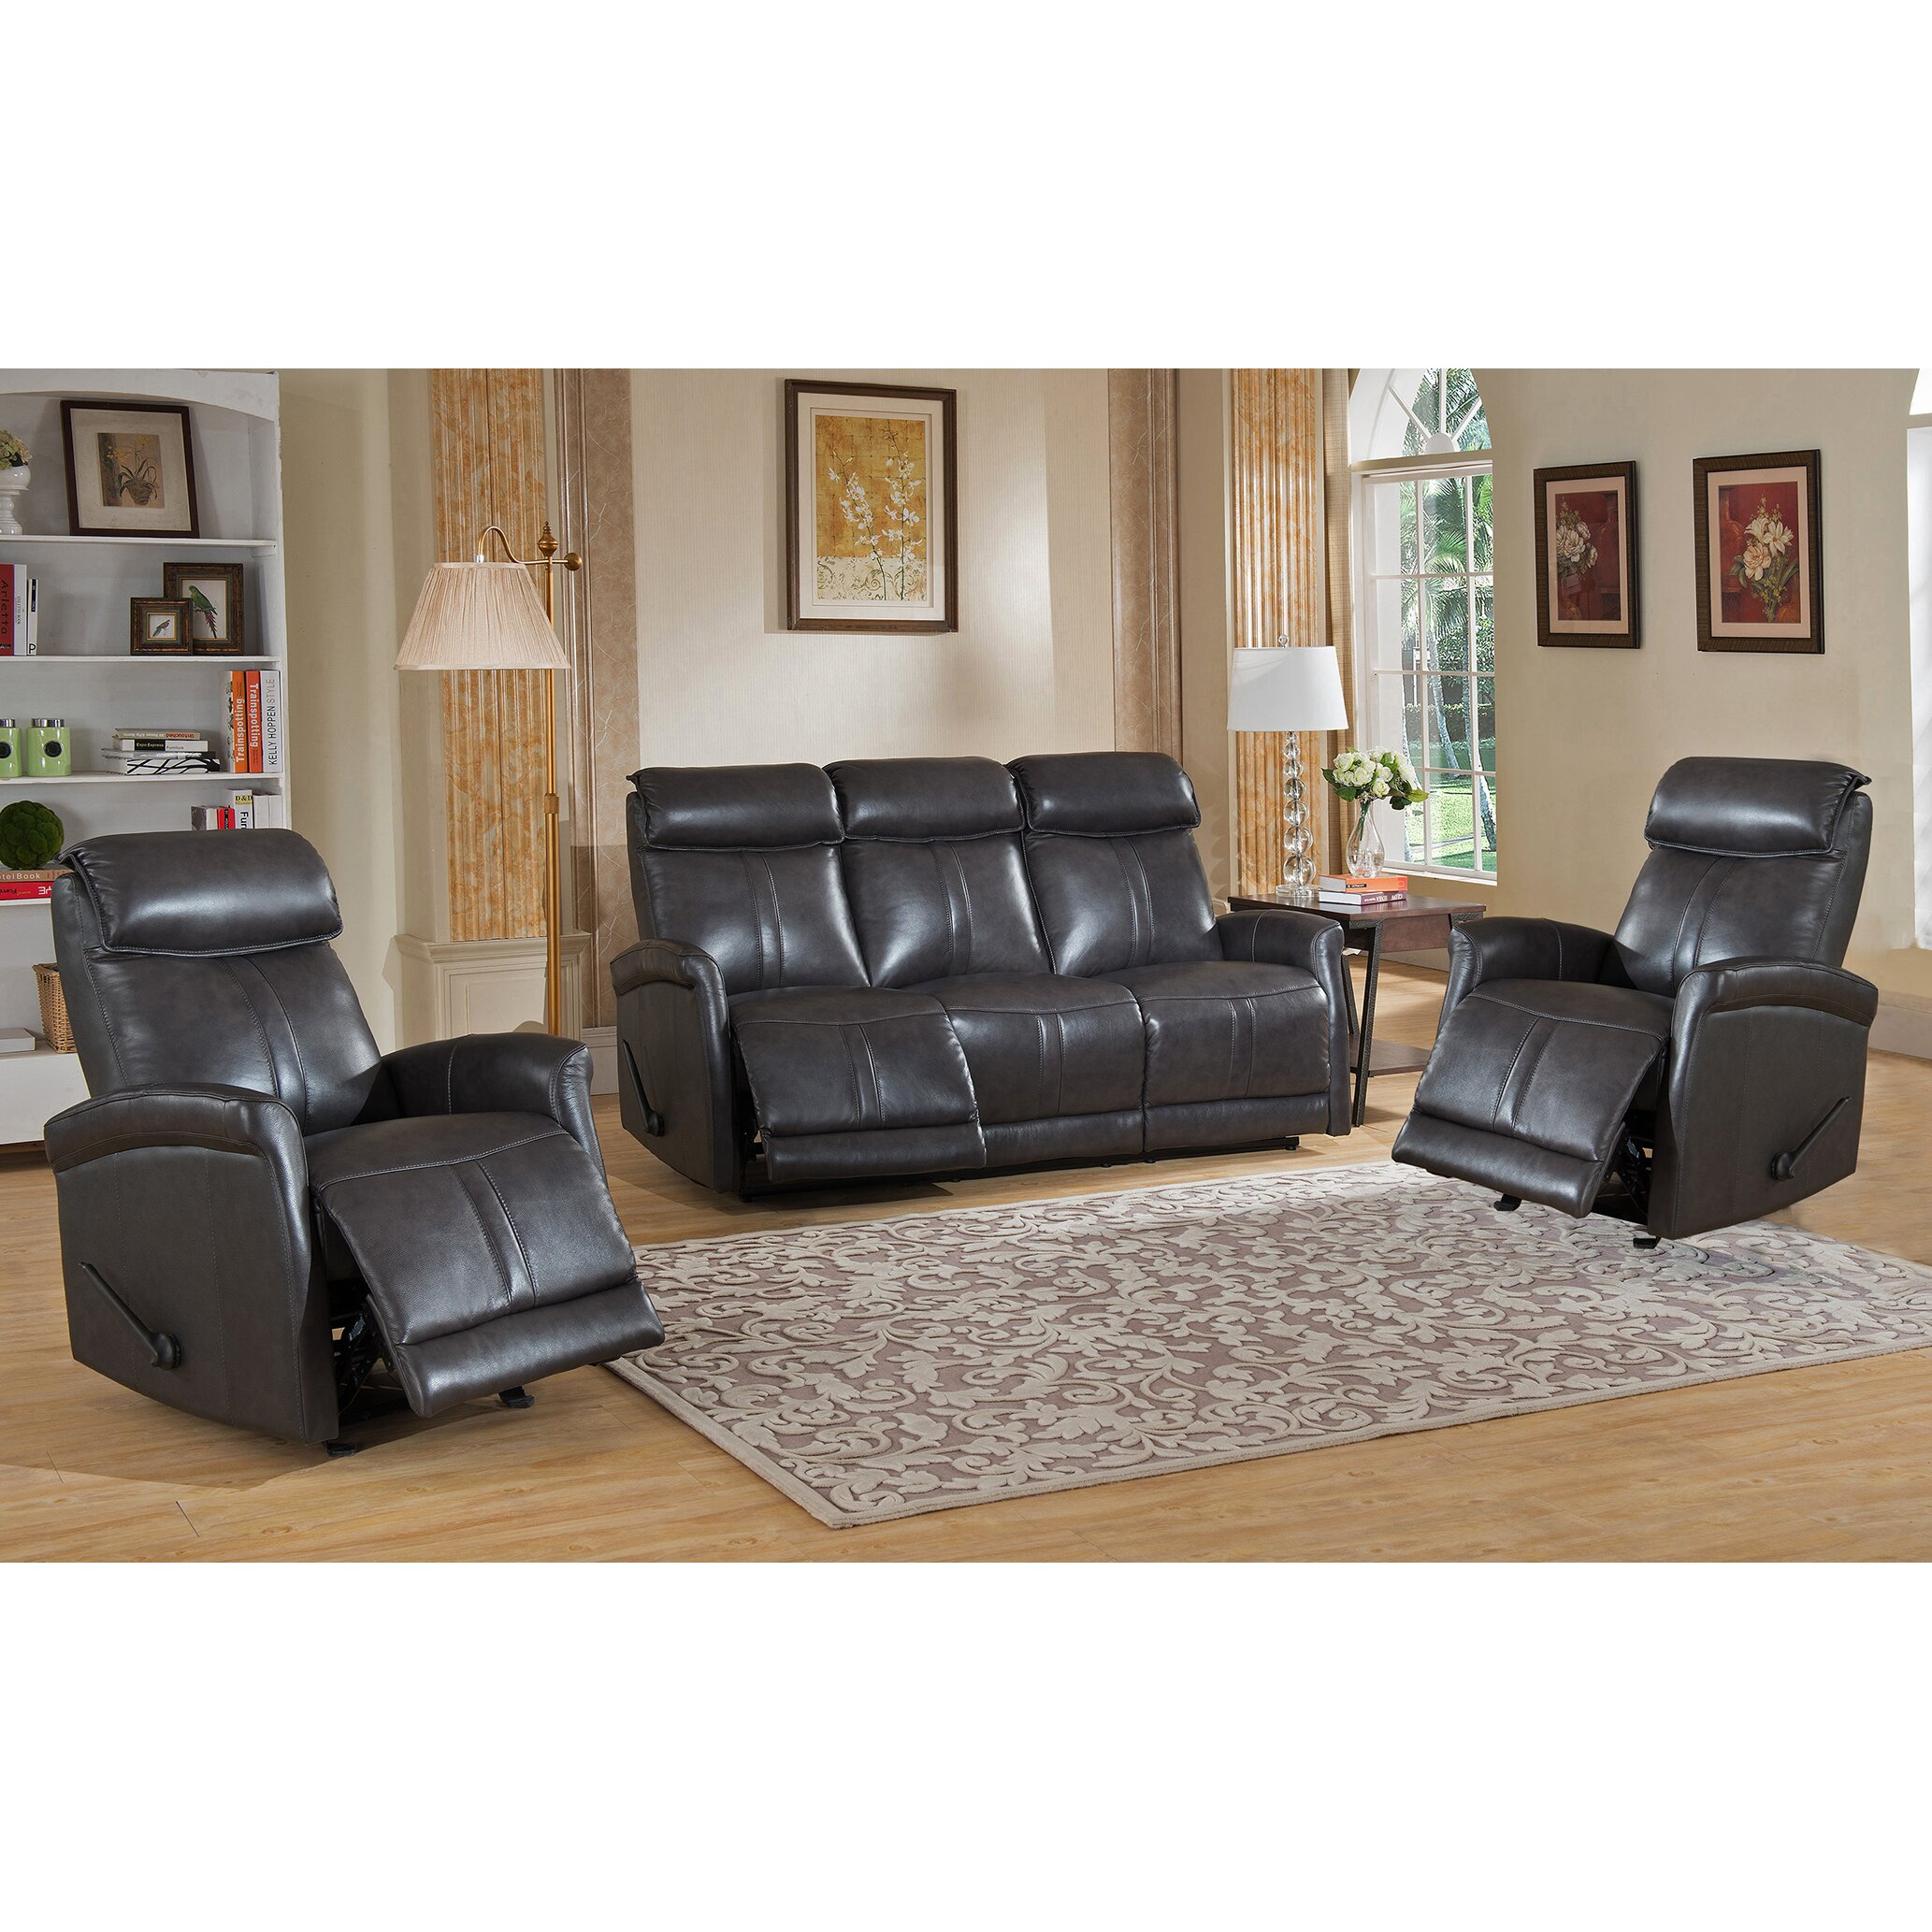 Three piece leather living room set modern house for 3 piece living room set